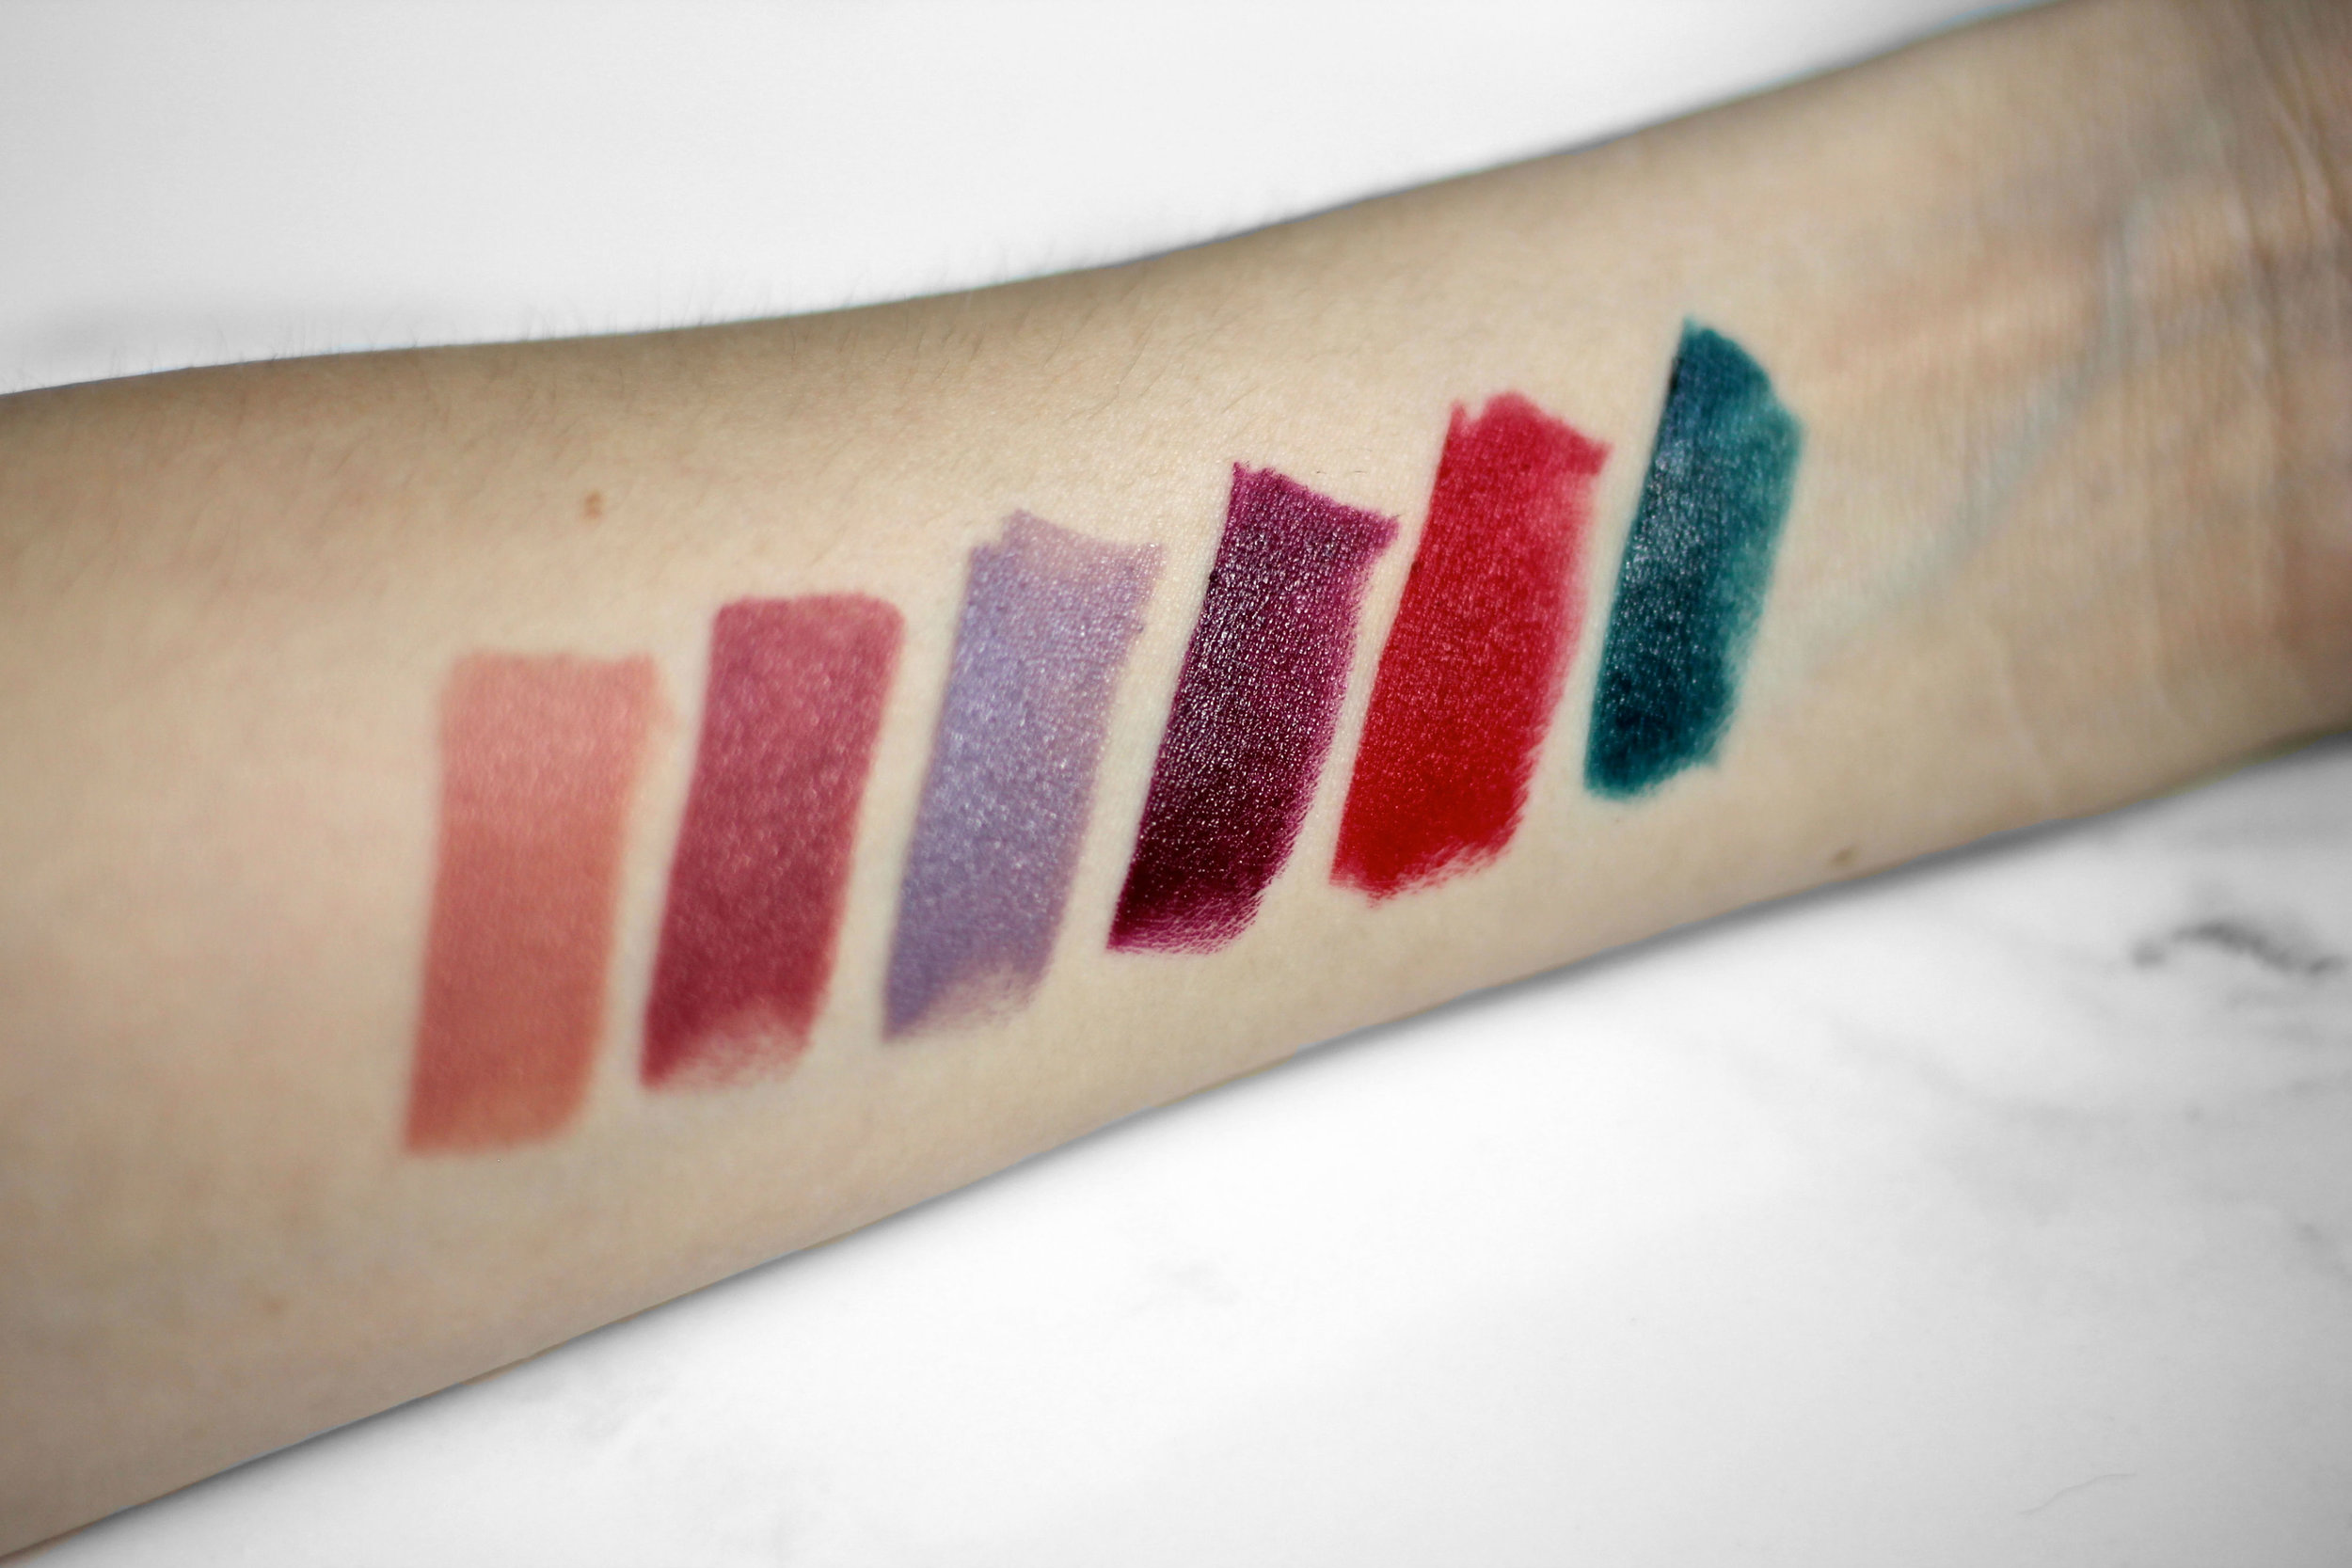 Swatched L-R: Permanent:C105, C211, C502, C506 +Limited Edition: M401 and C603.